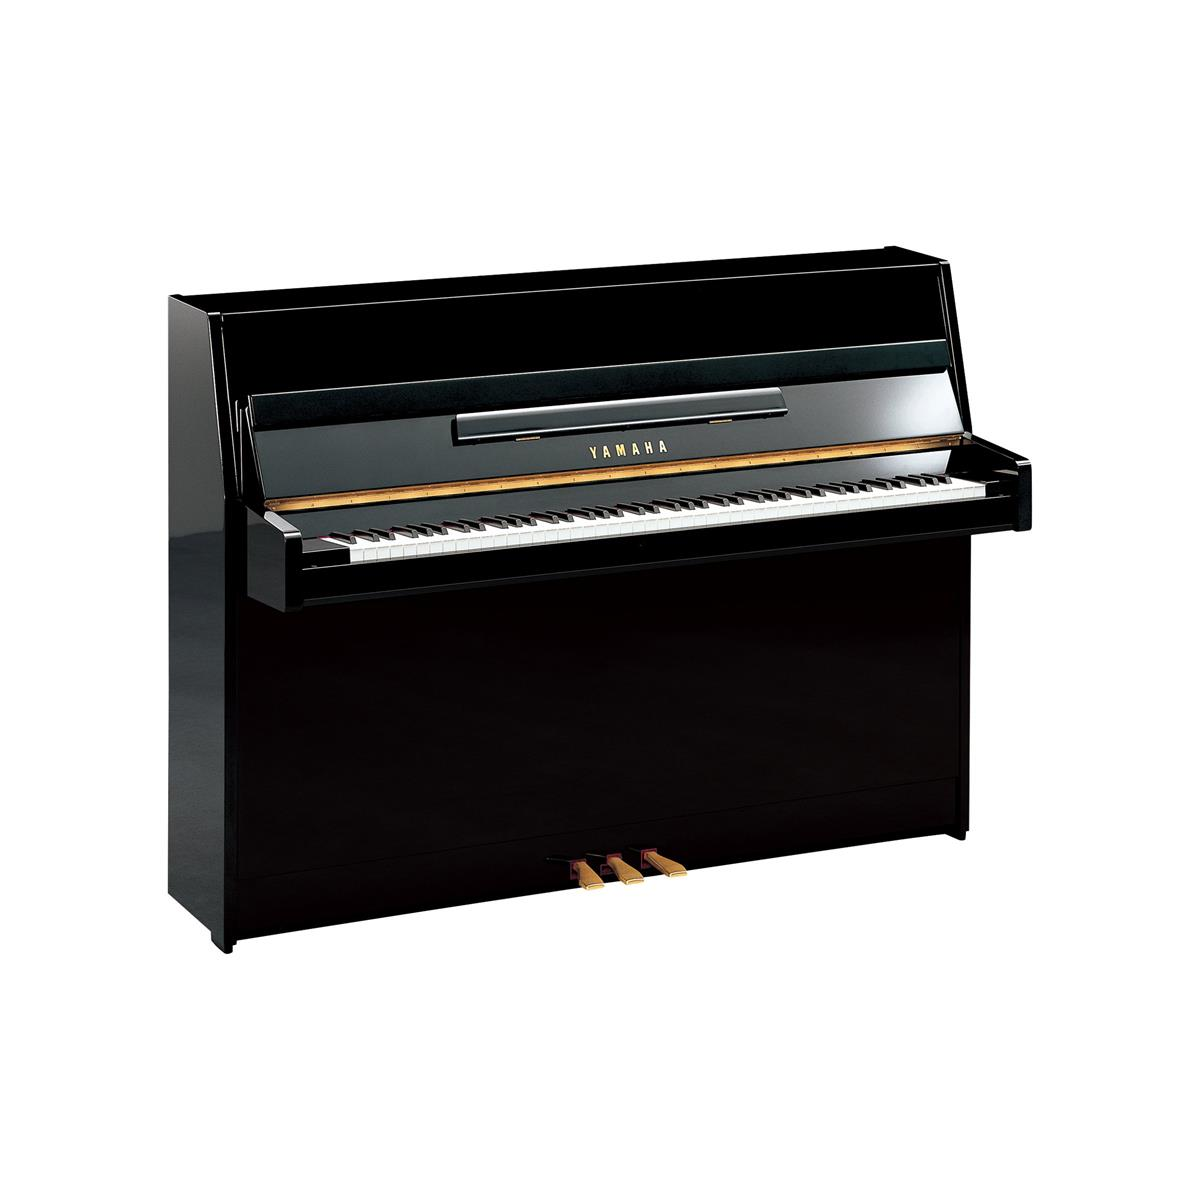 Yamaha Upright Piano JU109 PE JU109-PE POLISHED BLACK with FREE Items